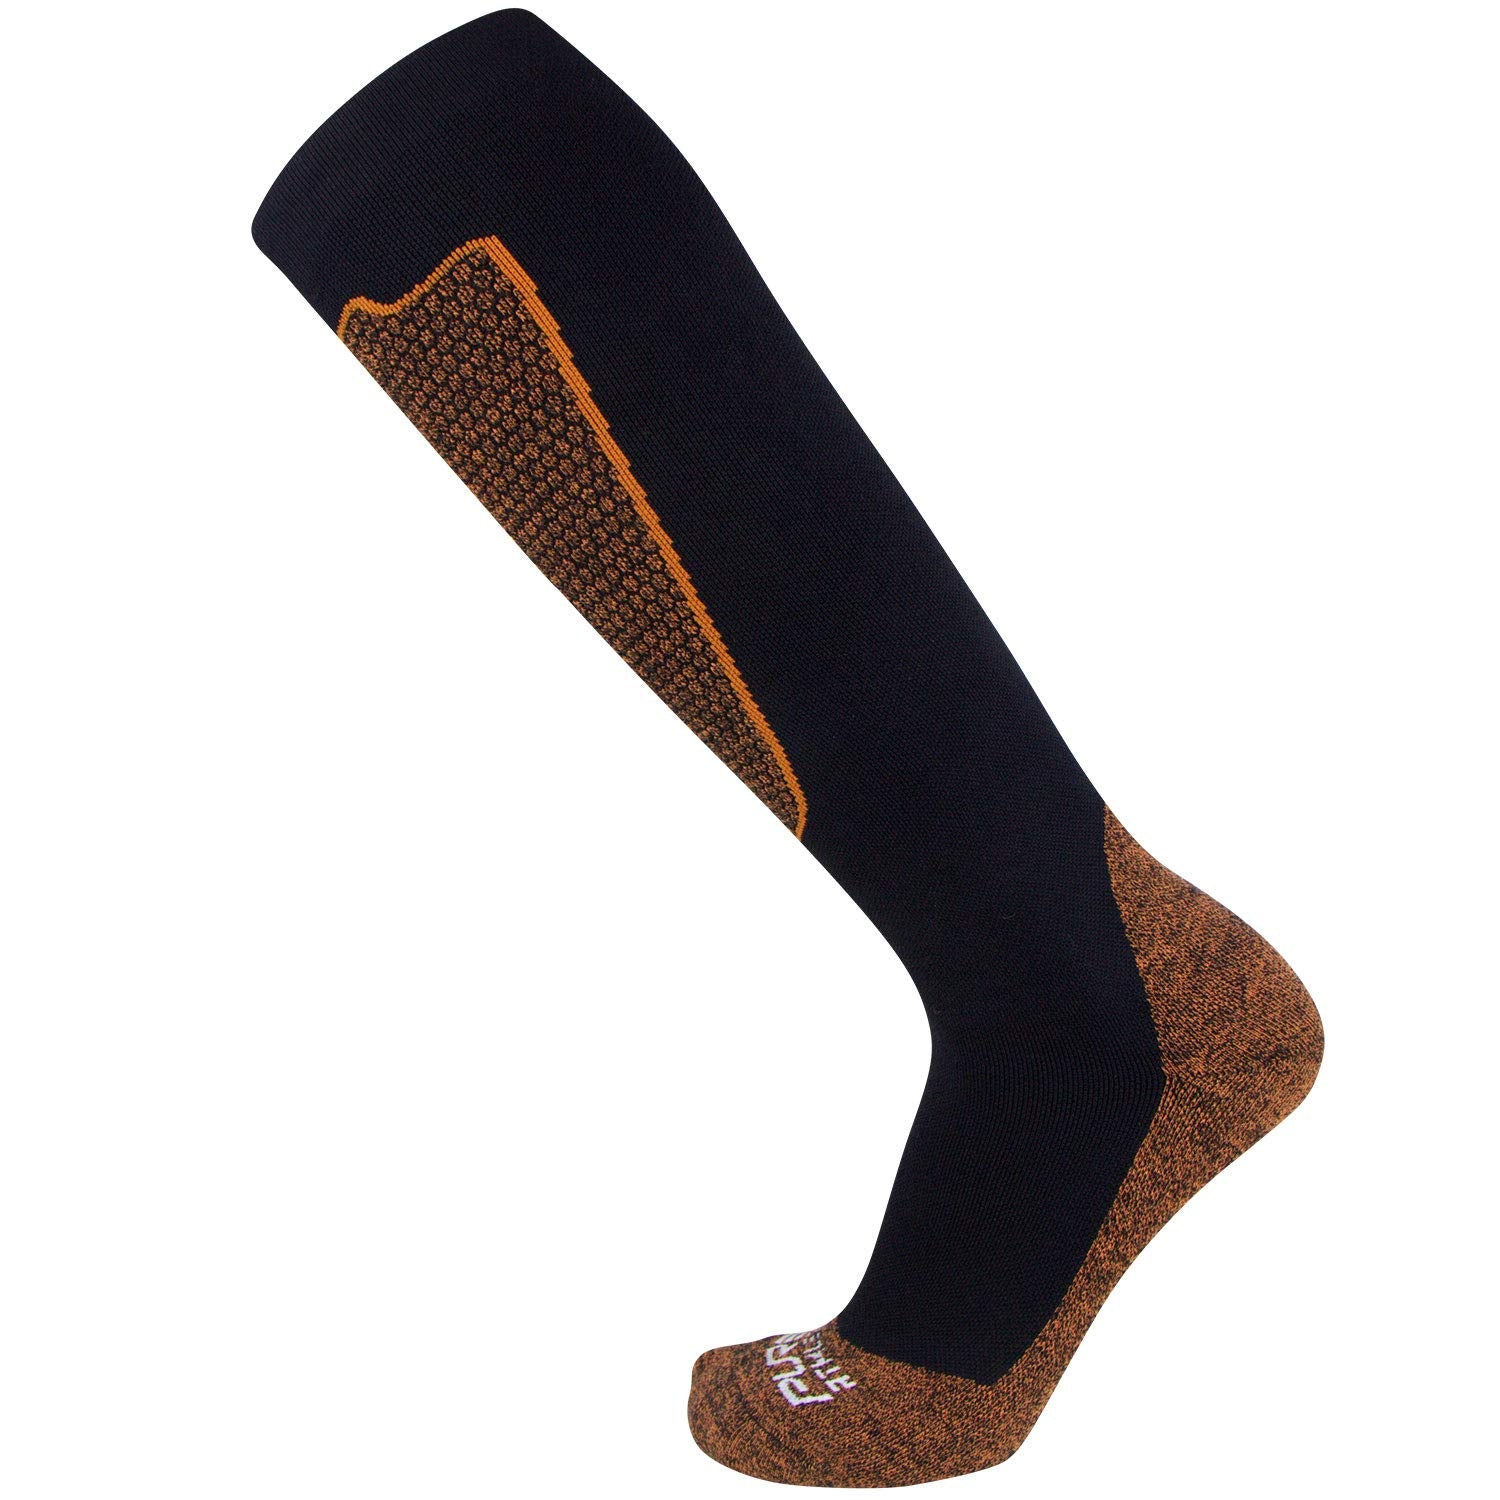 Copper Compression Ski Socks